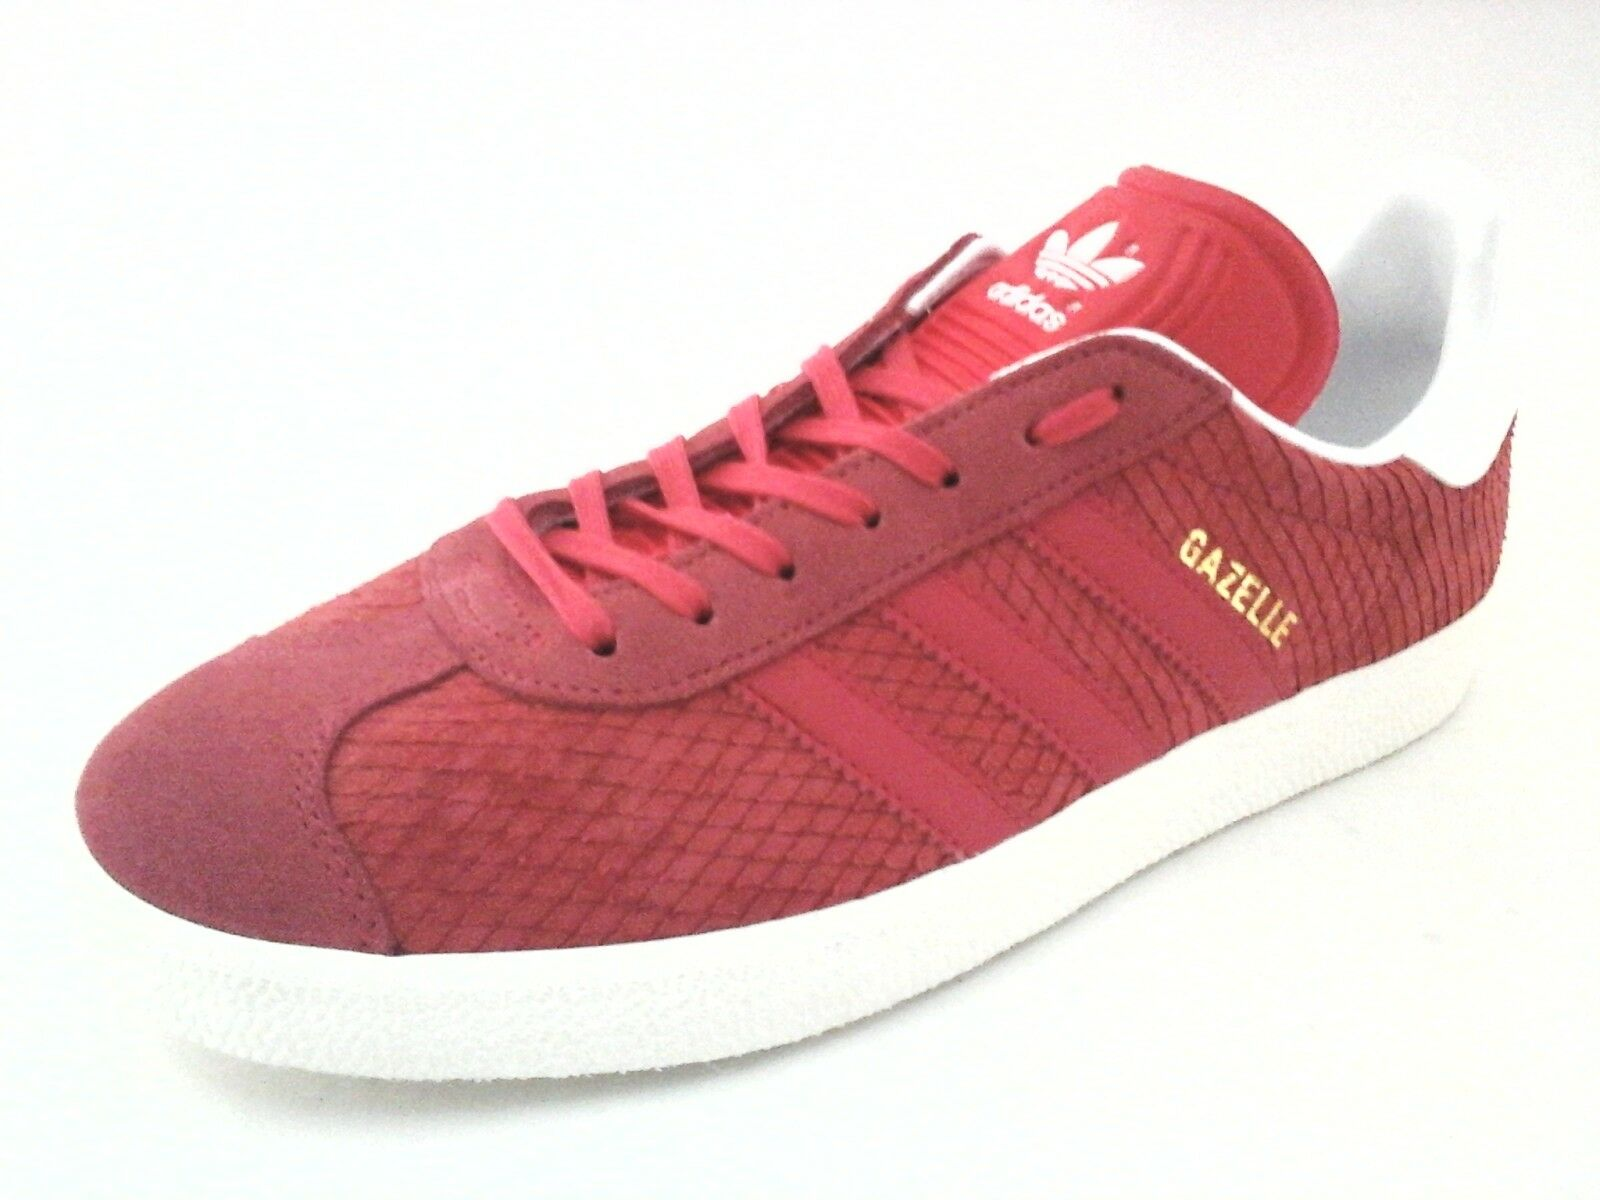 Adidas BB5174 Gazelle Women's Reptile Suede shoes Sneakers Coral US 9 EU 41 1 3